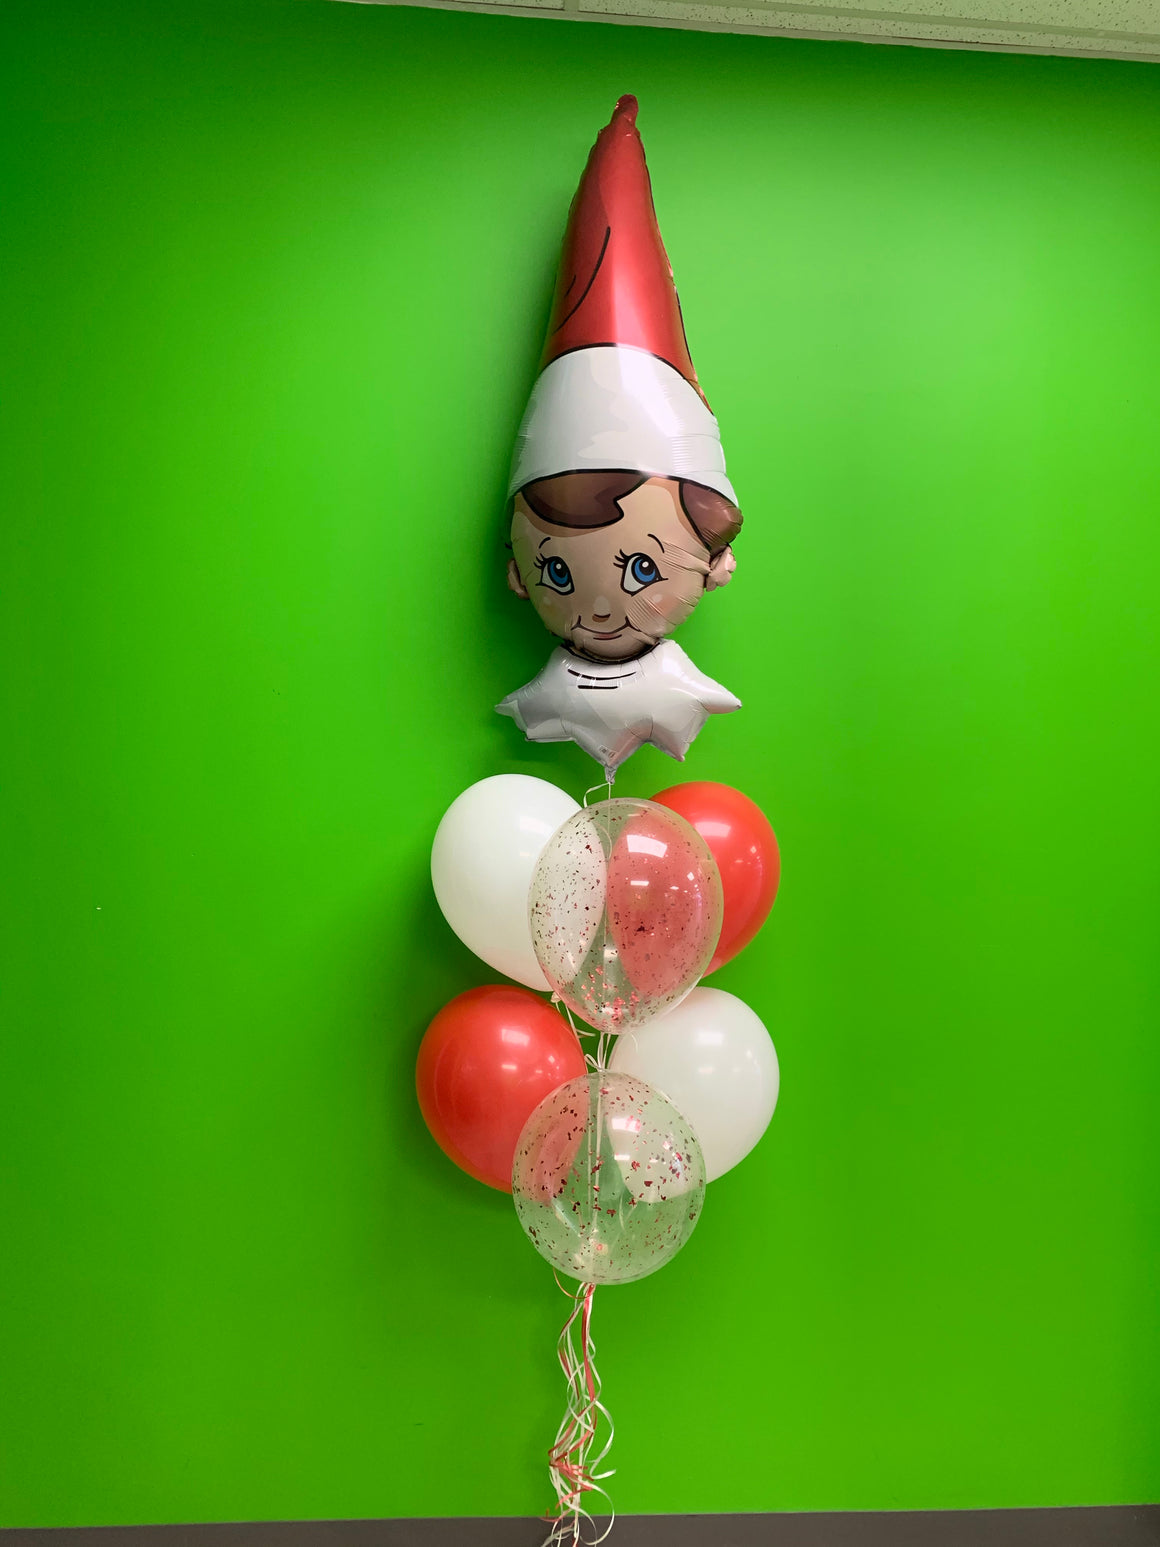 Elf on the shelf balloon bouquet